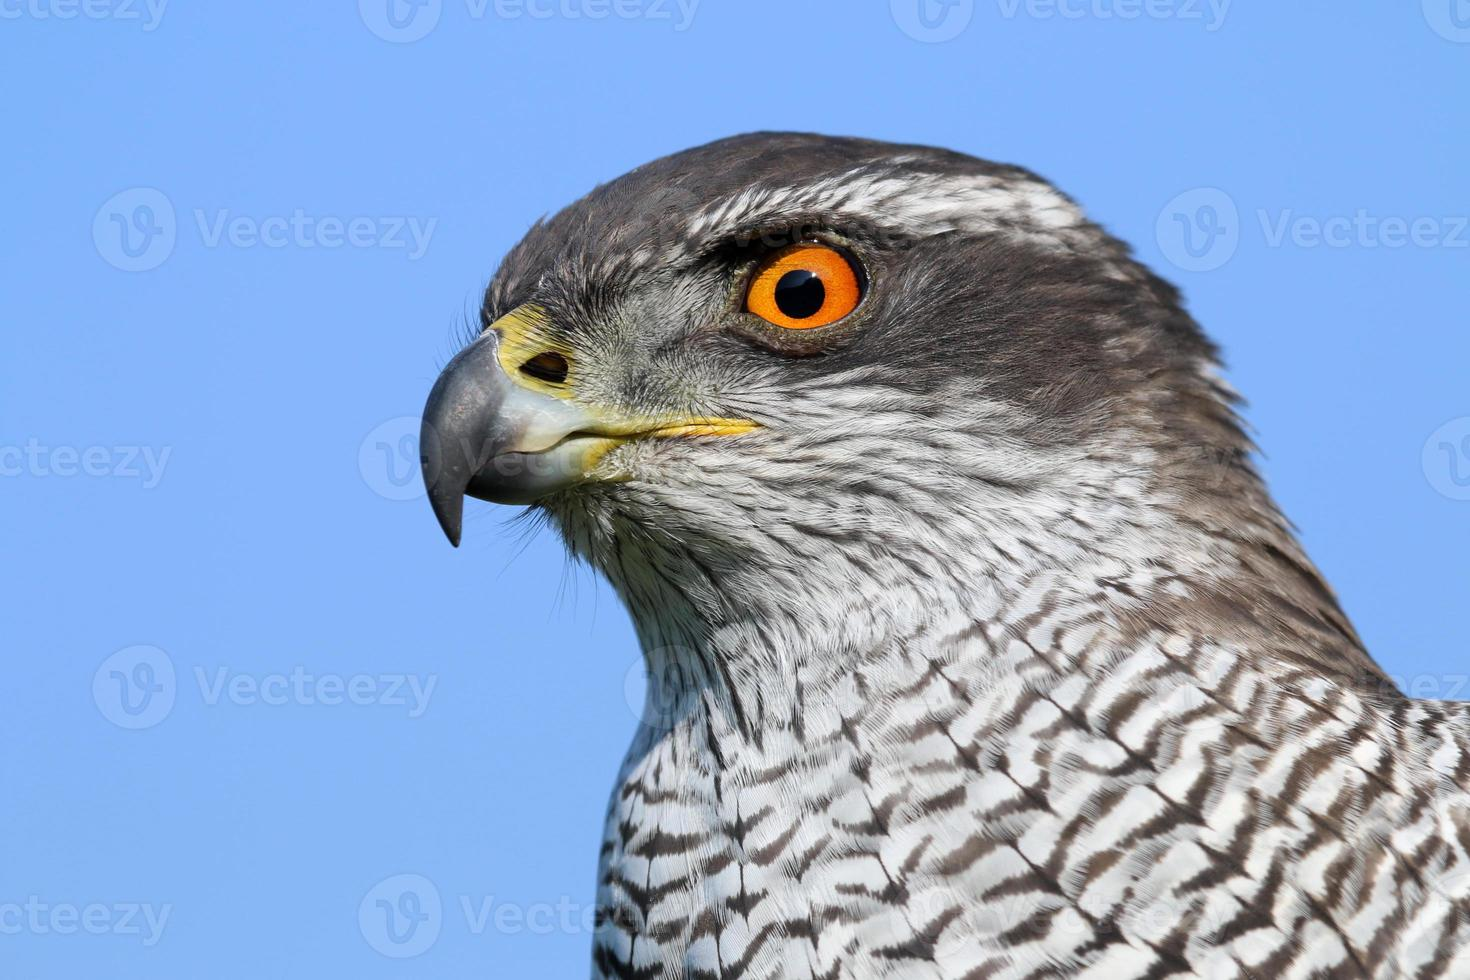 Northern goshawk photo